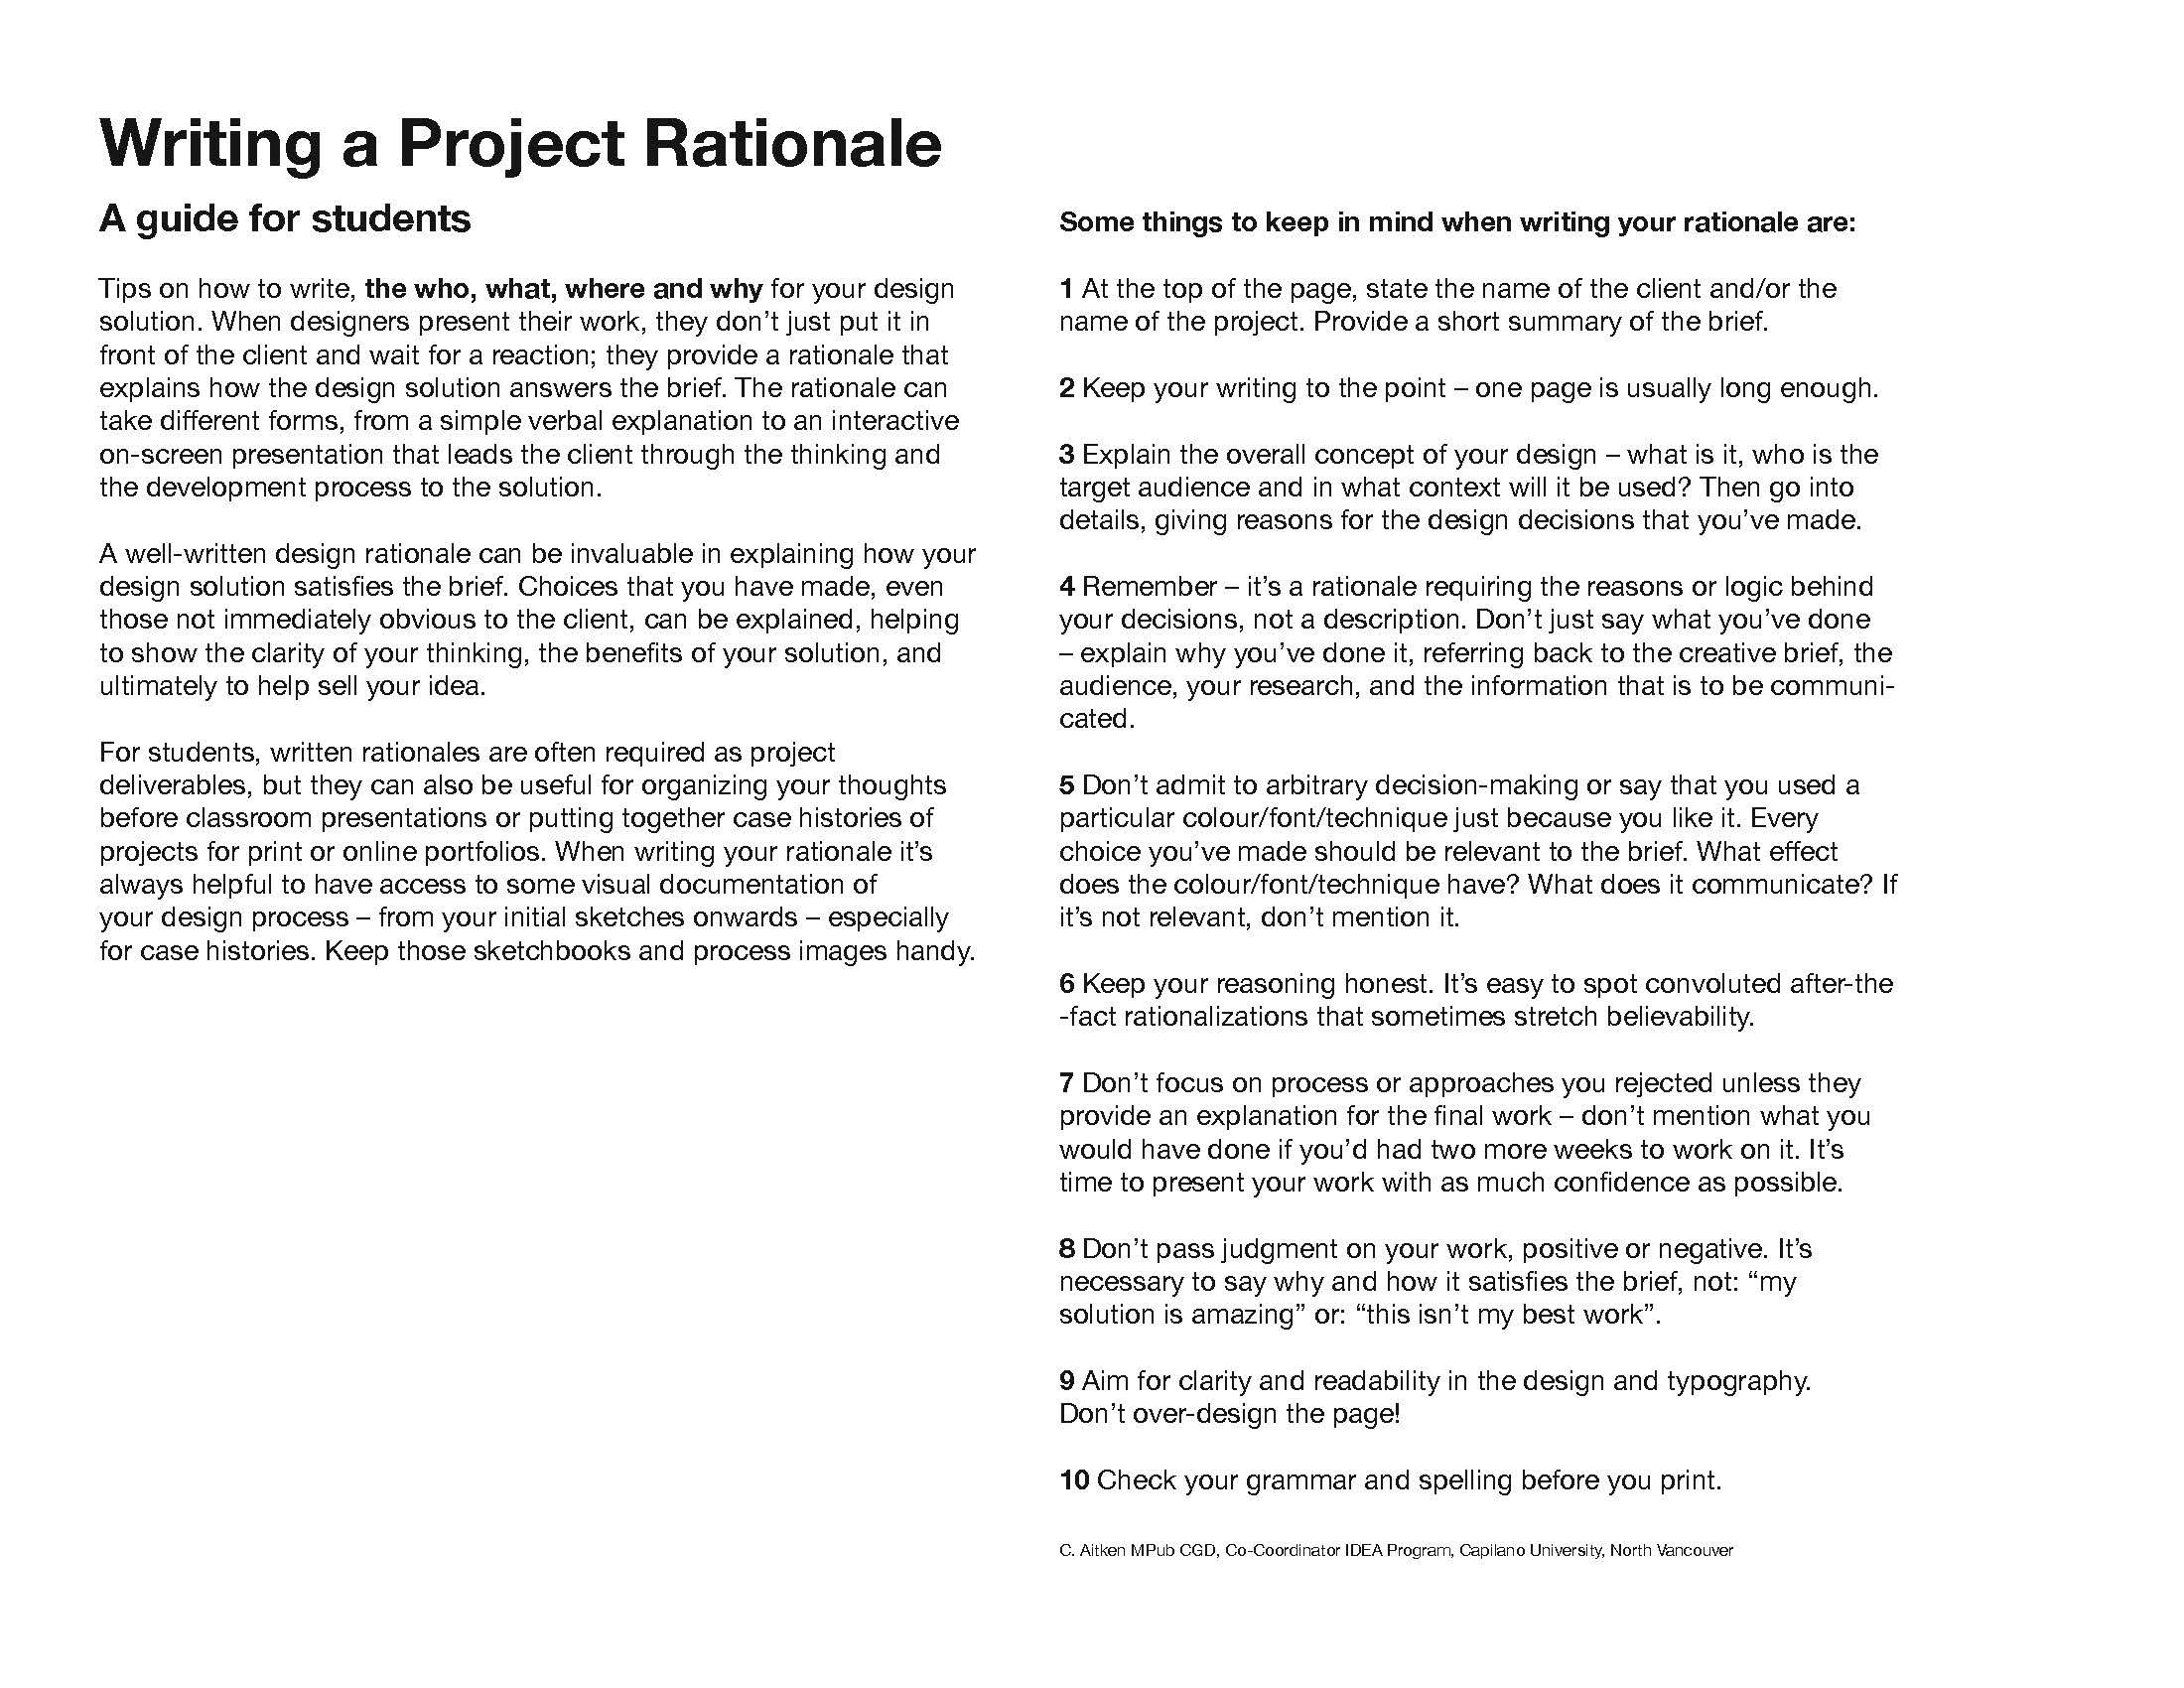 Tips For Writing A Project Rationale